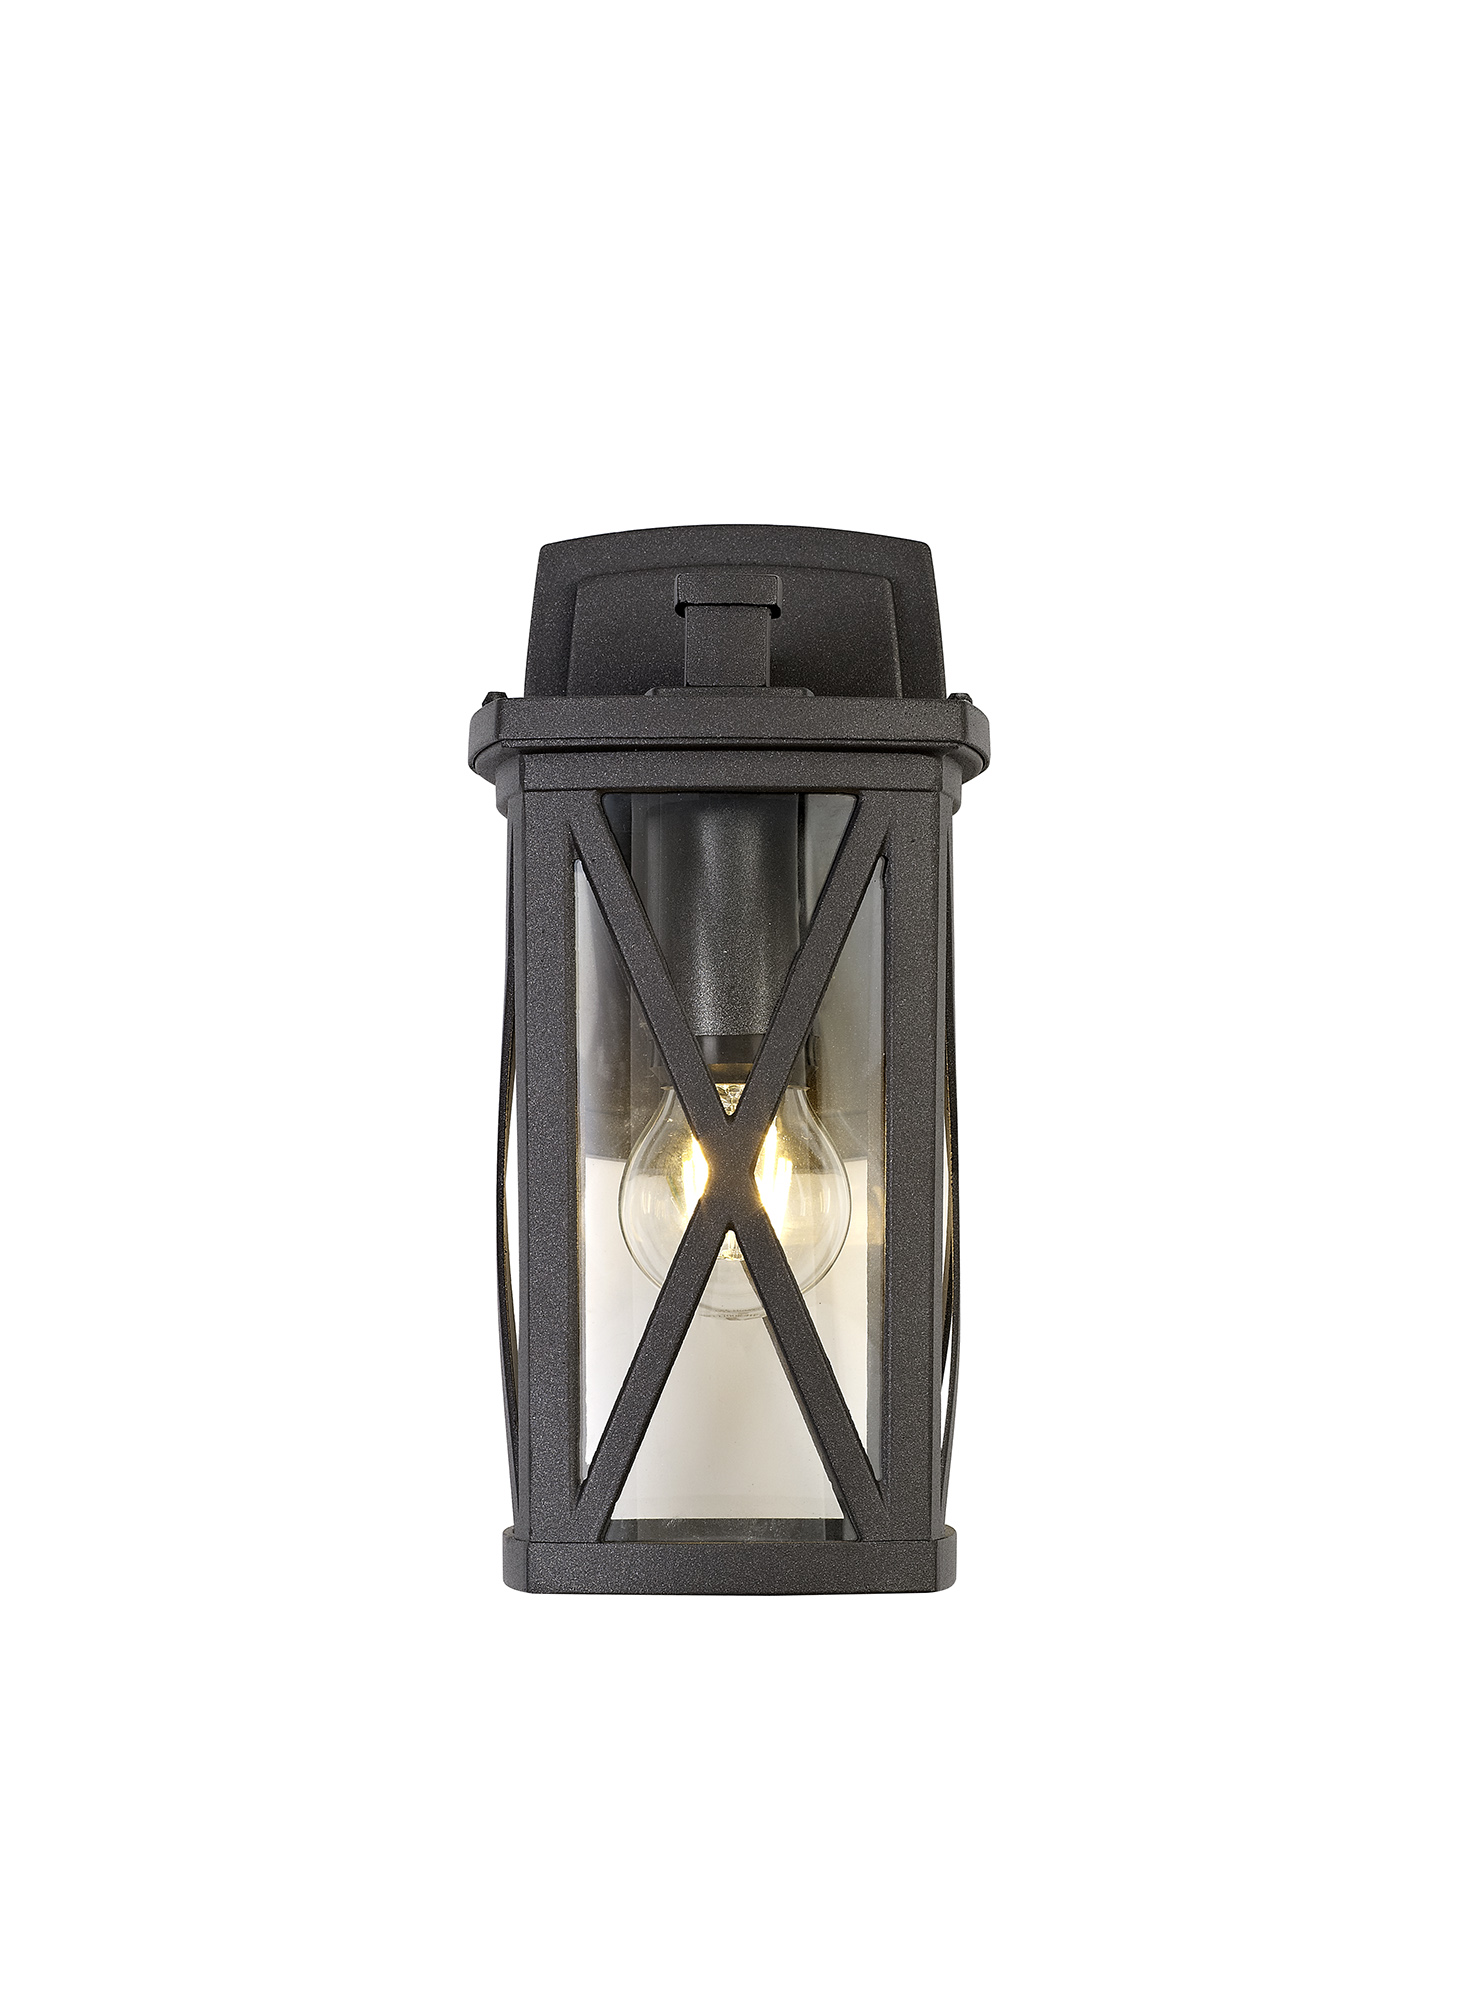 Down Criss Cross Wall Lamp, 1 x E27, IP54, Anthracite/Clear Glass, 2yrs Warranty